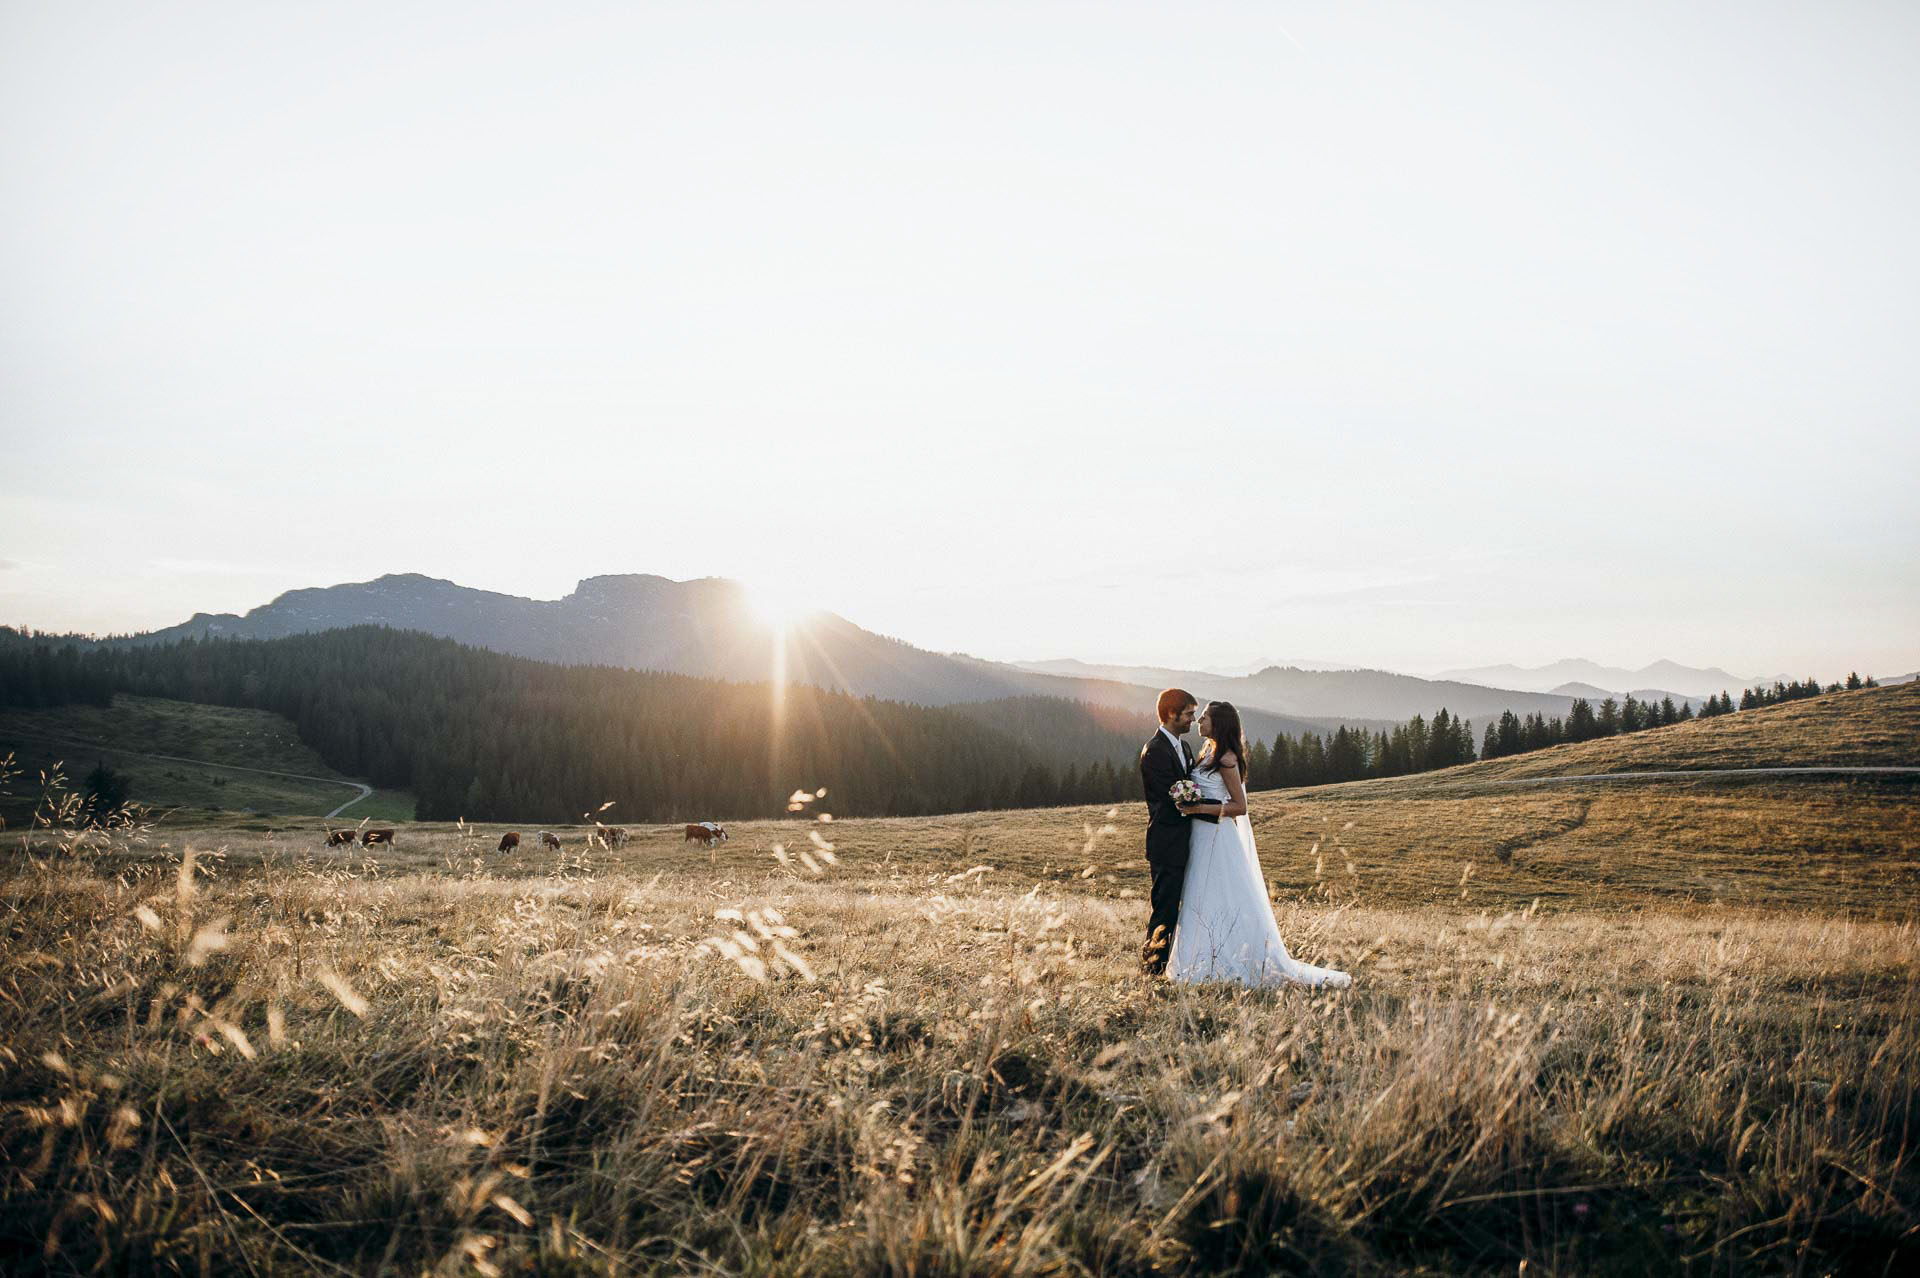 Hochzeitsfotograf in den Bergen | mountainweddings